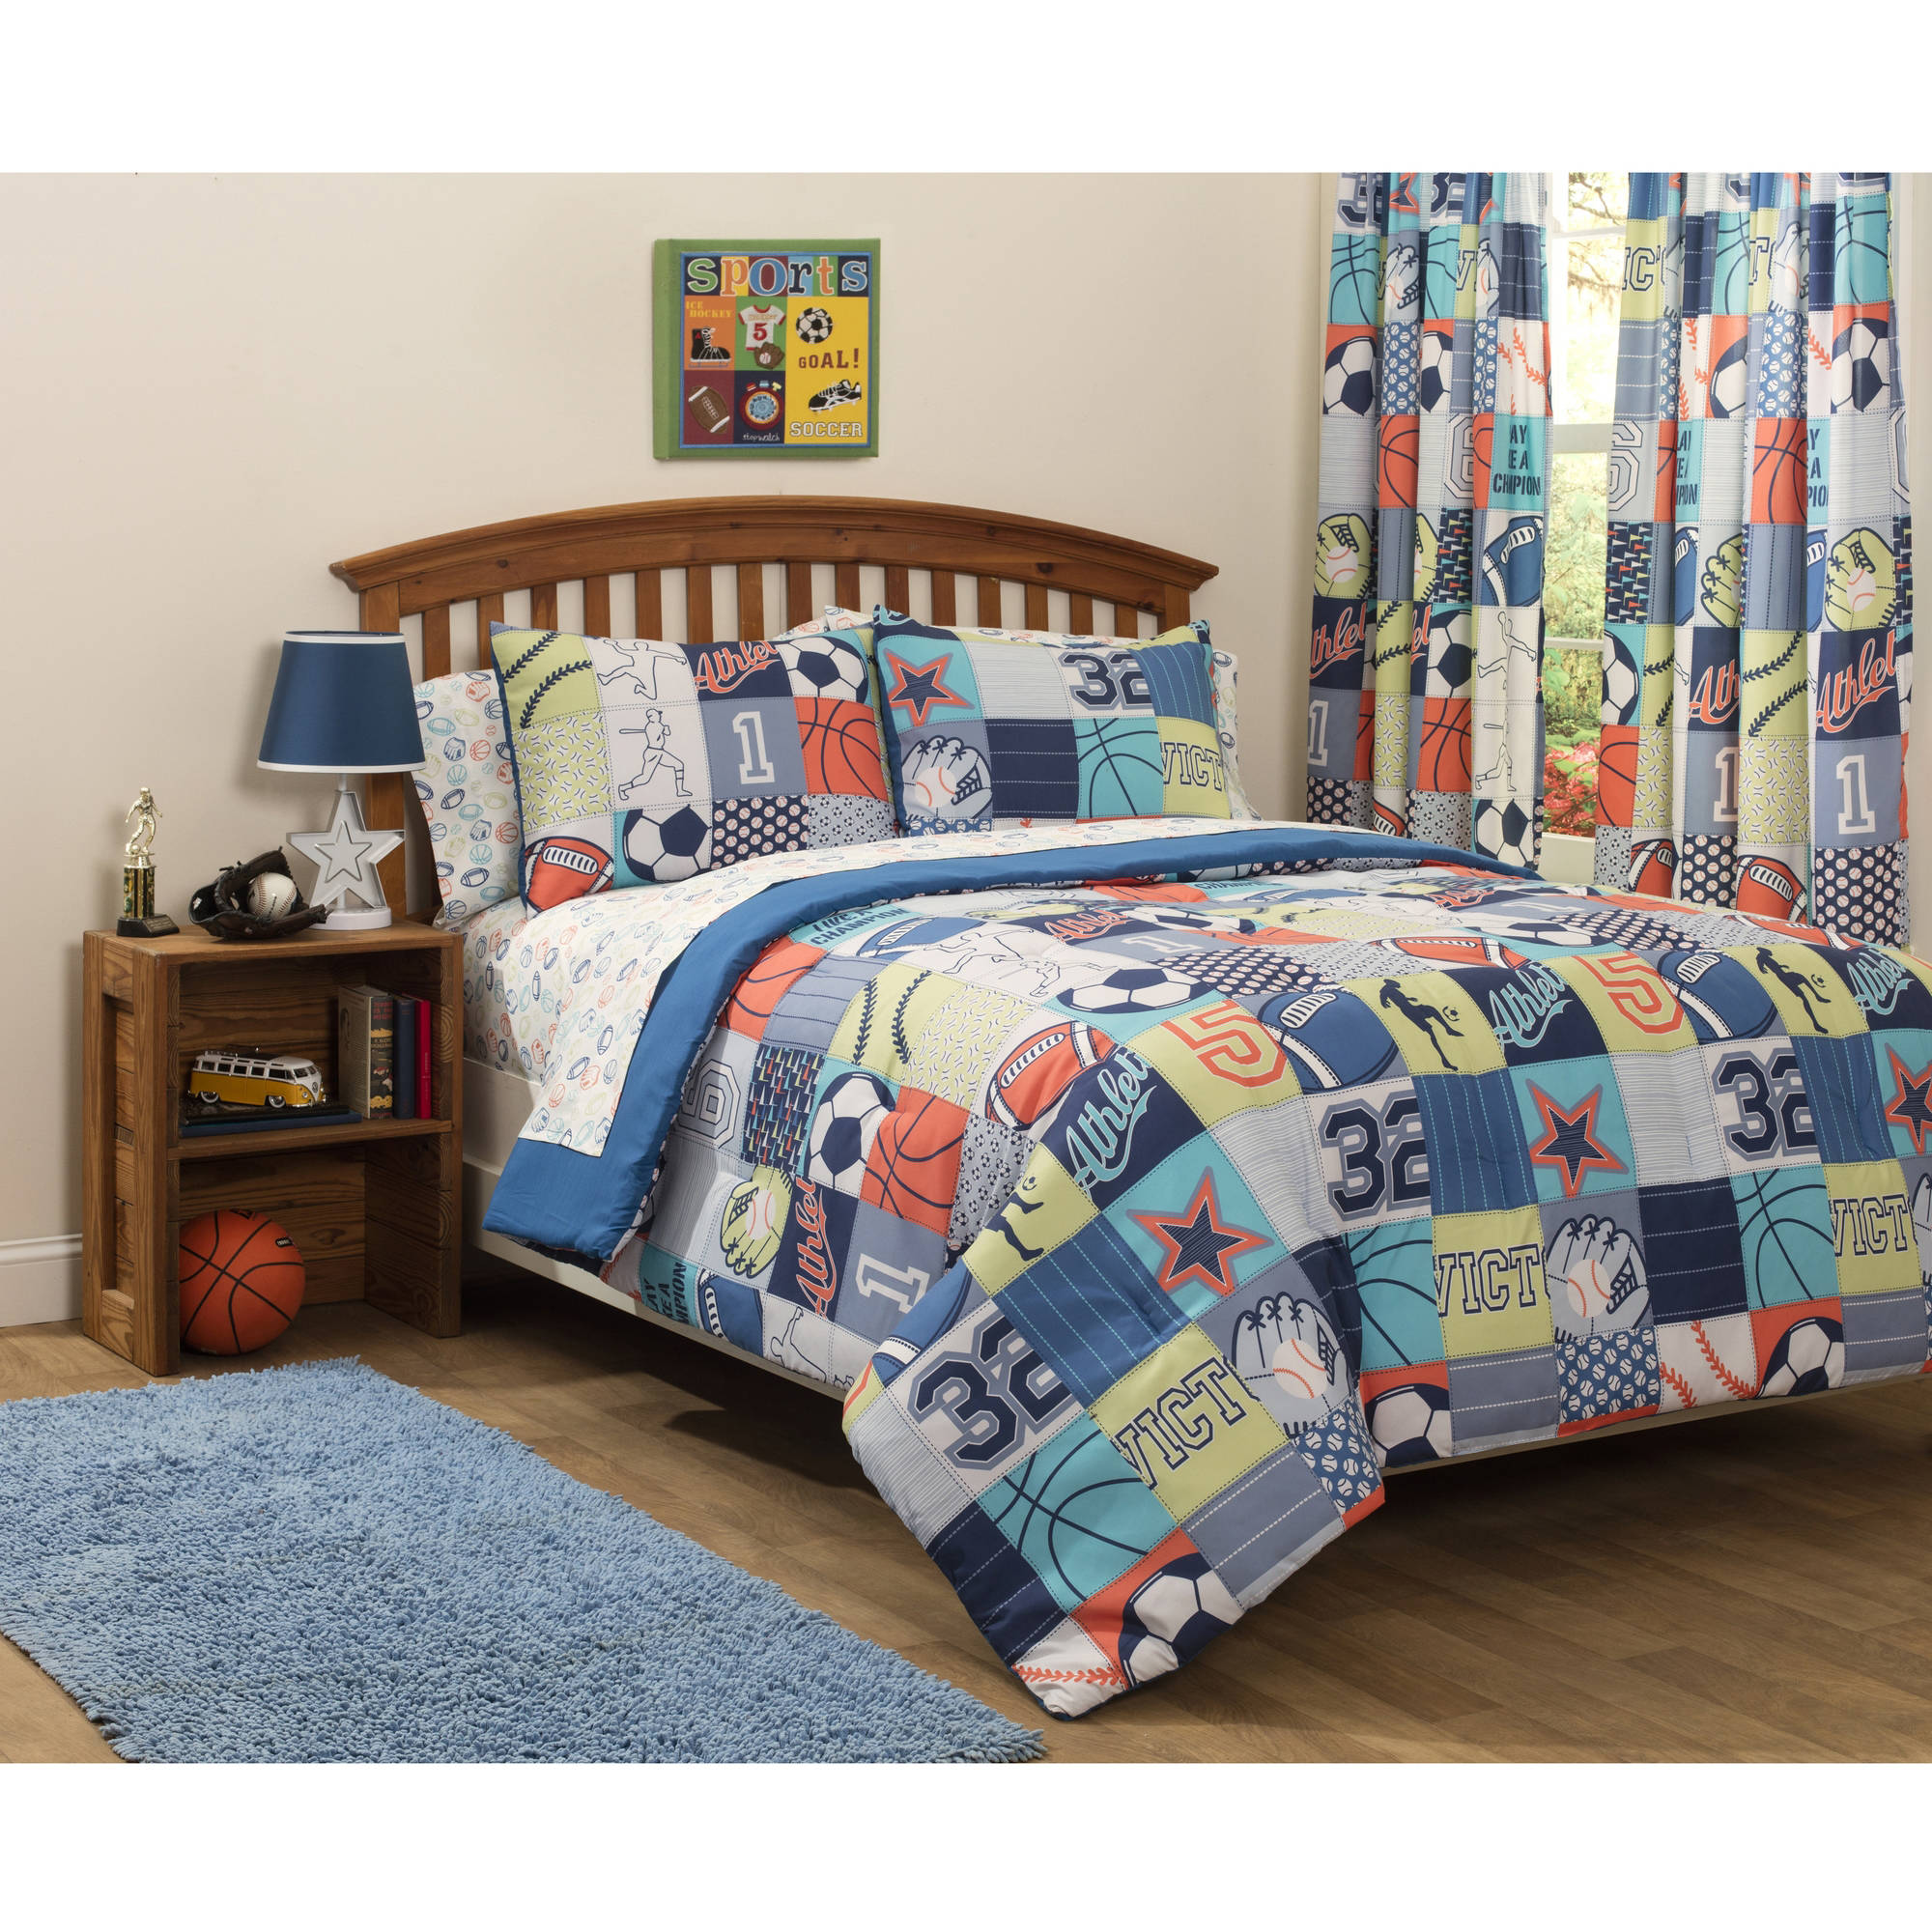 Mainstays Kids Play Like A Champion Bed in a Bag Bedding Set